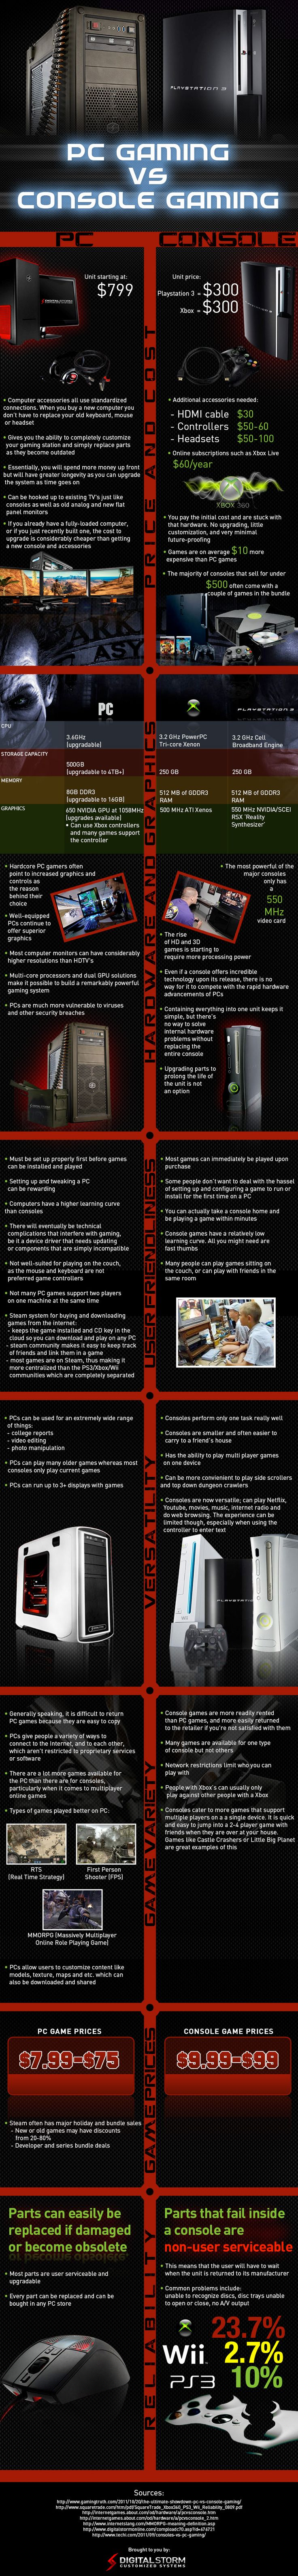 PC Gaming vs. Console Gaming Infographic